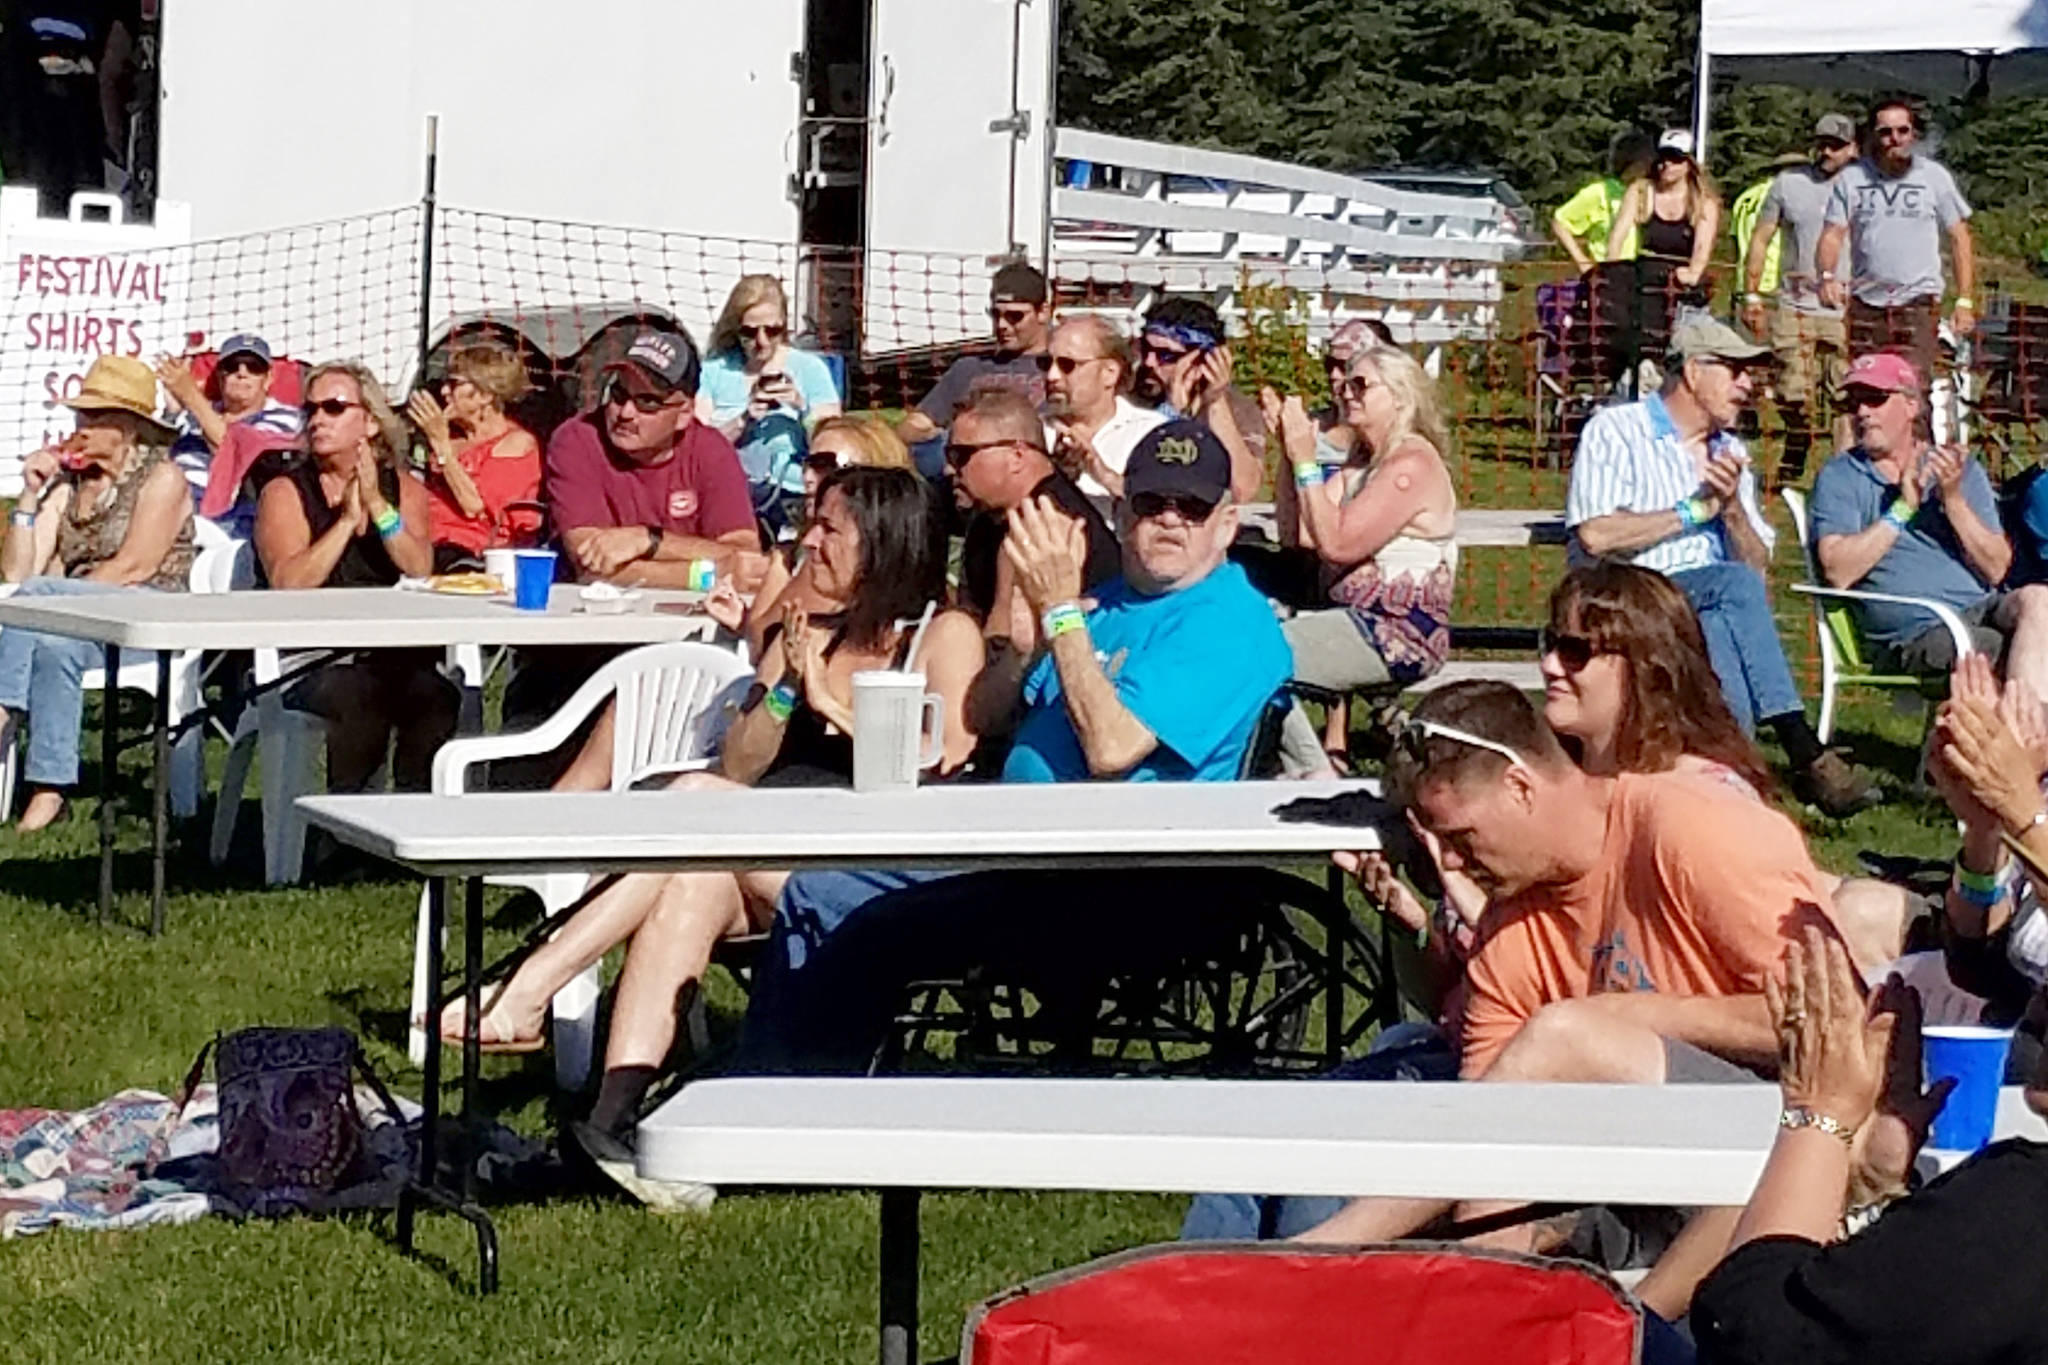 A group of concertgoers enjoy the music at the 2018 Rock'n the Ranch at the Rusty Ravin music festival in Kenai. (Photo provided by Valerie Anderson)